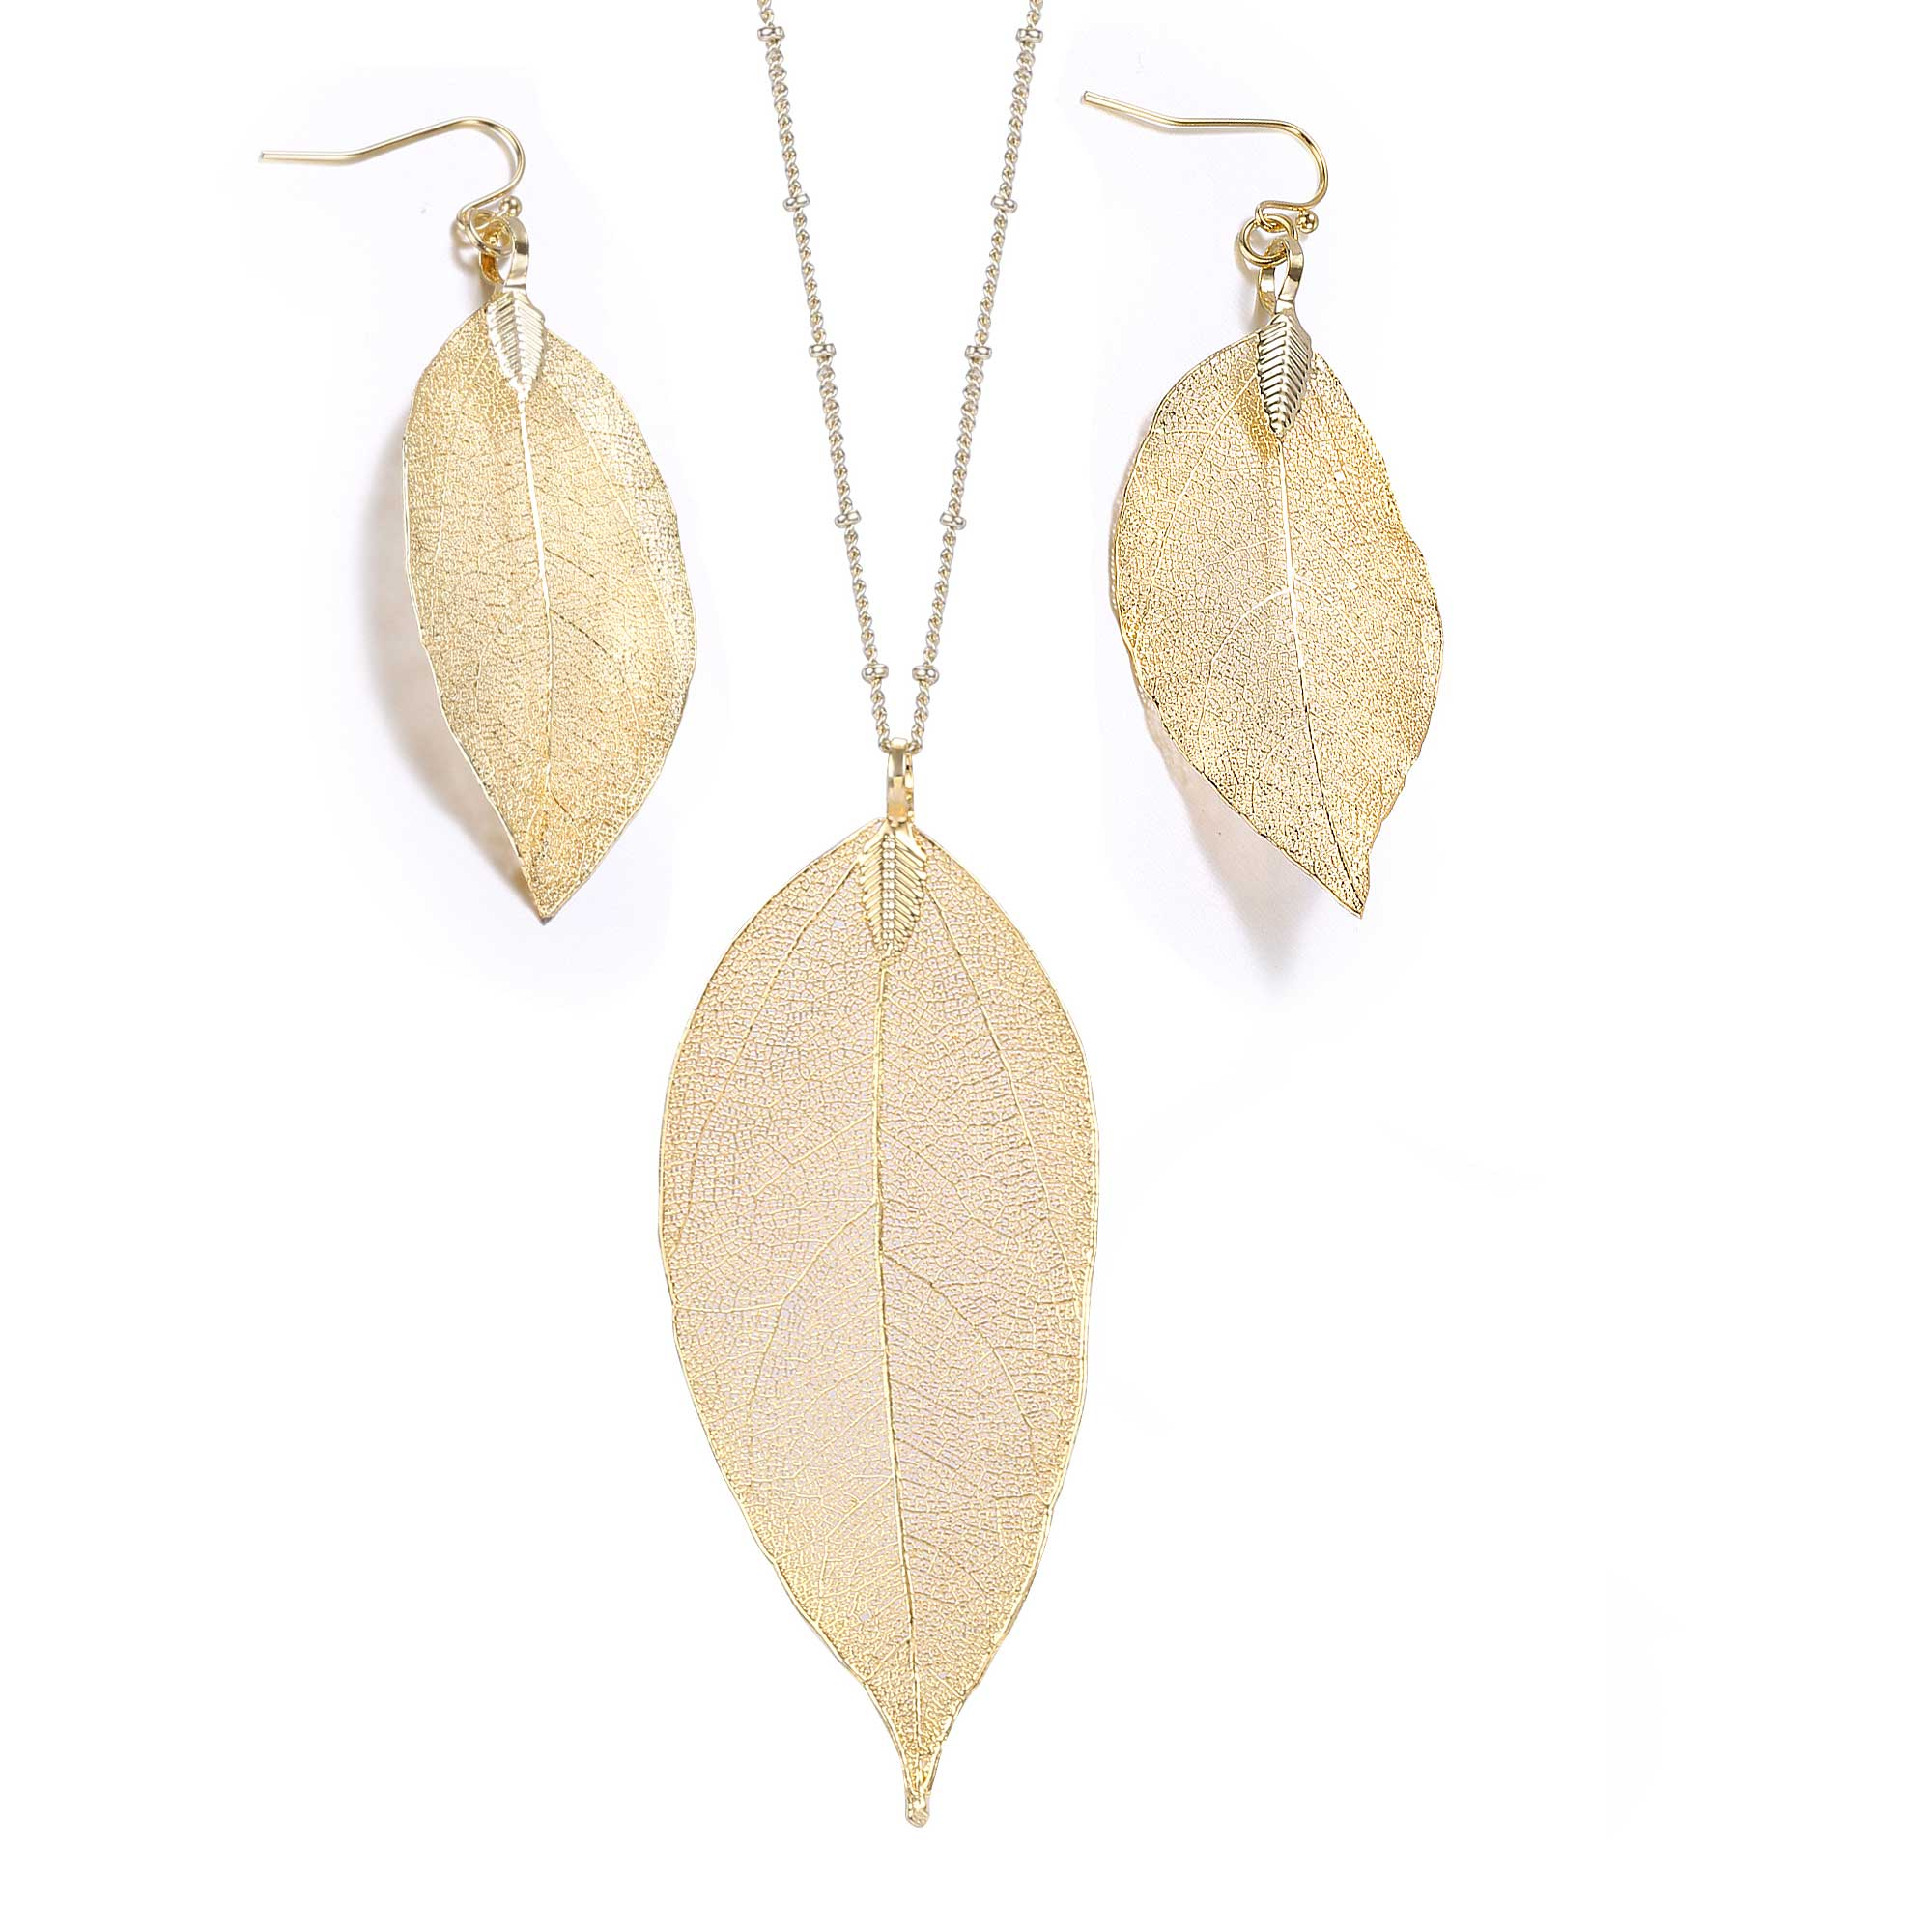 14k Gold Plated Filigree Leaf Necklace Earring Set